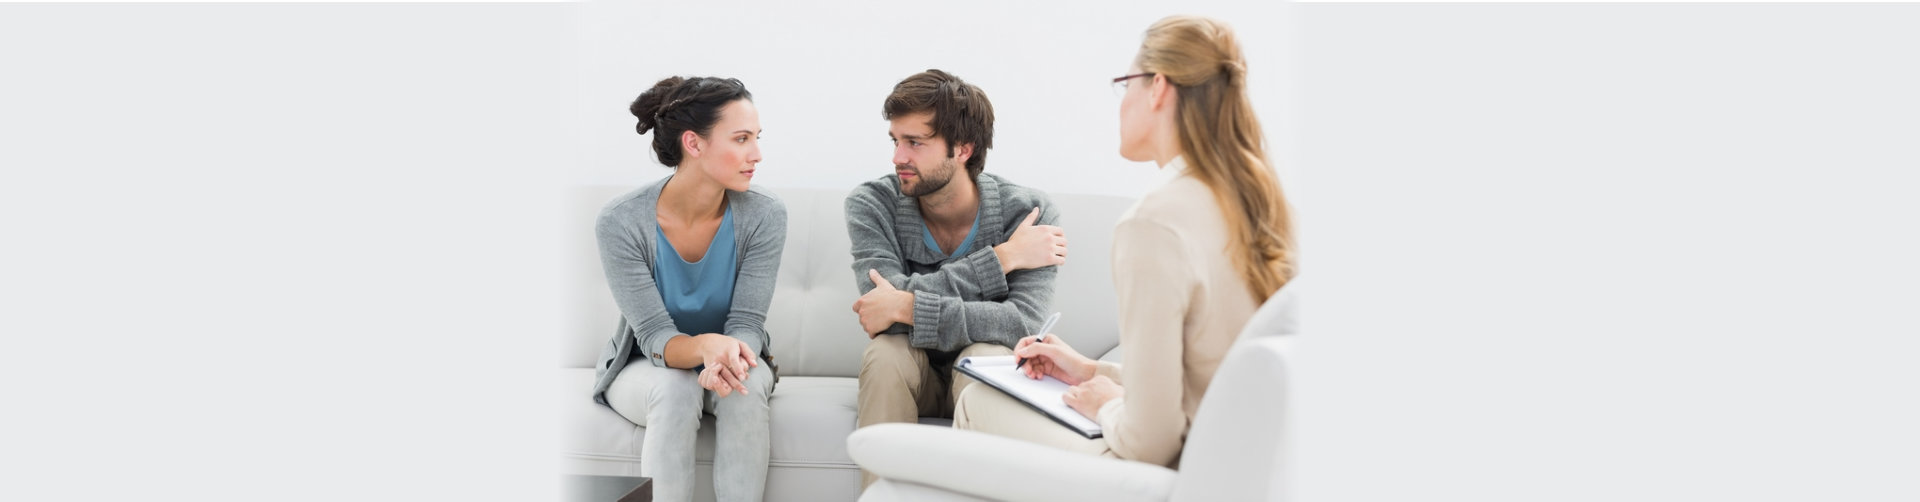 two people having therapy